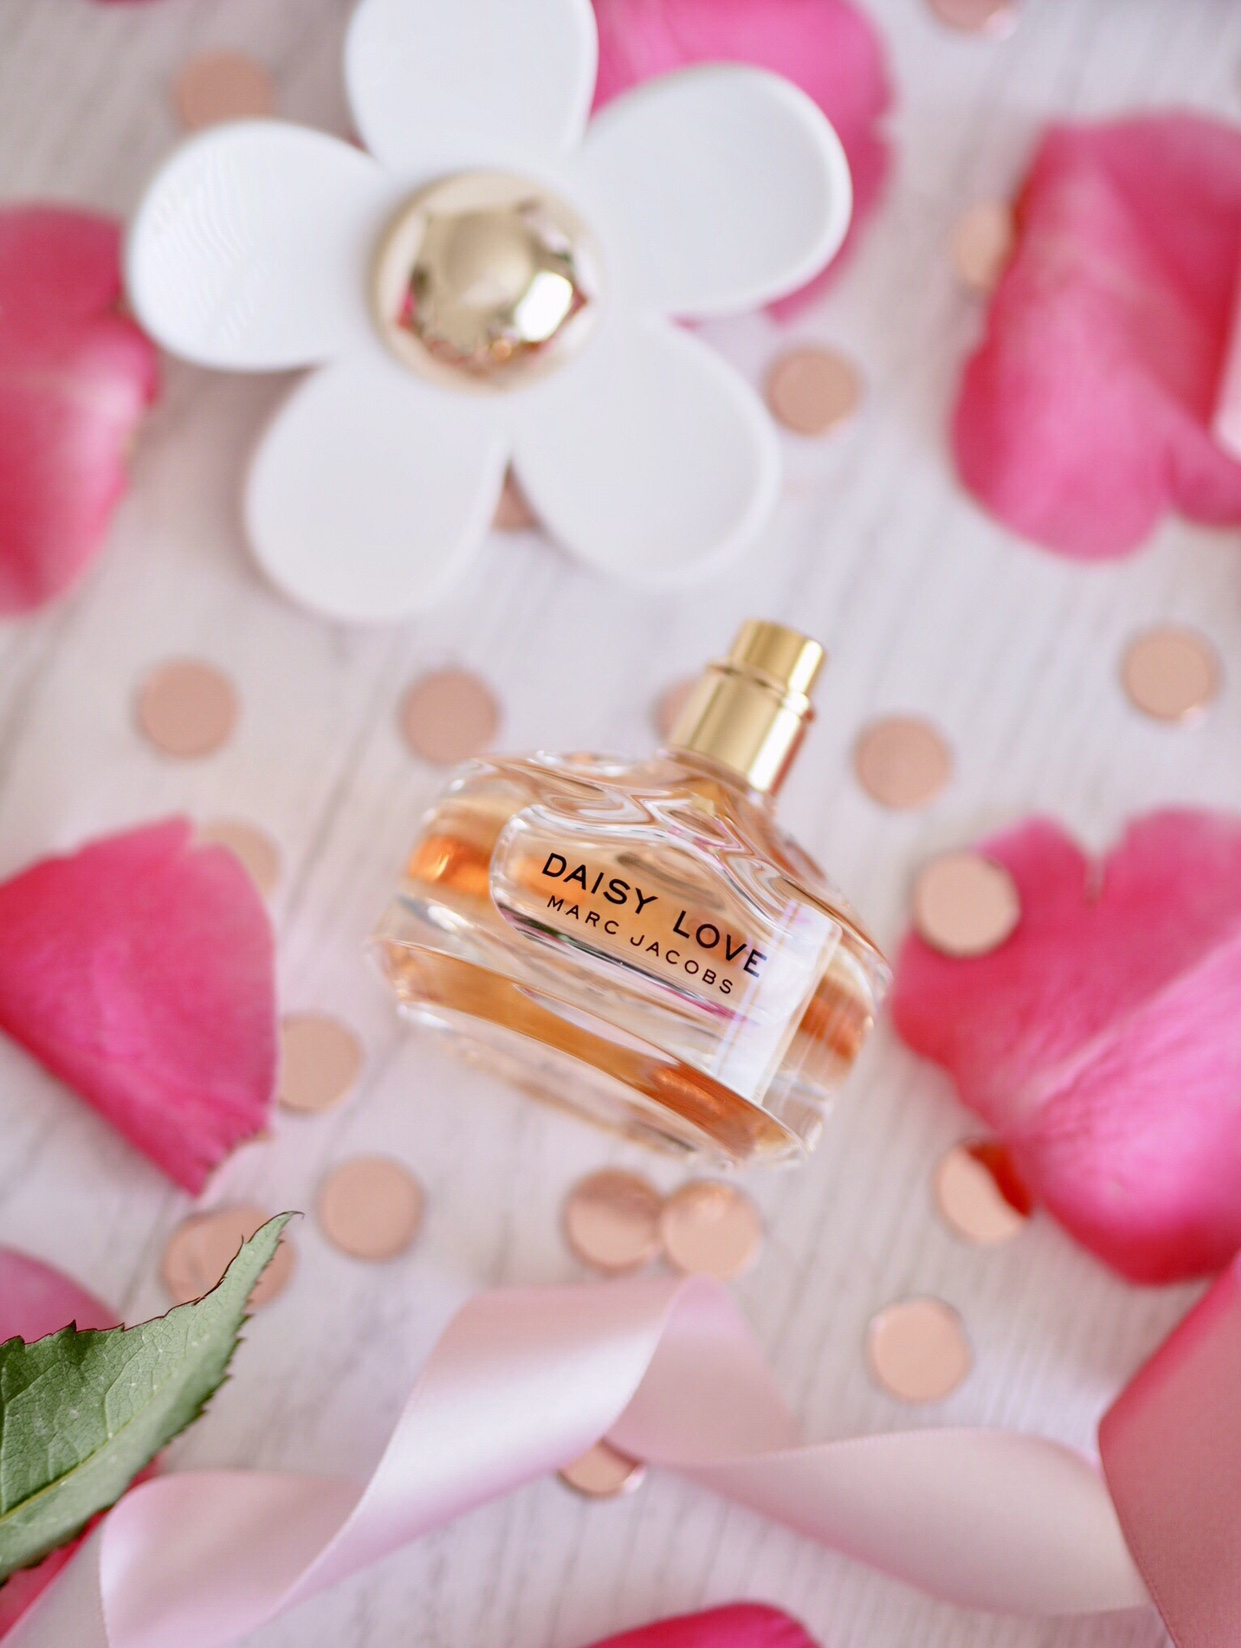 Daisy love fragrance Direct summer